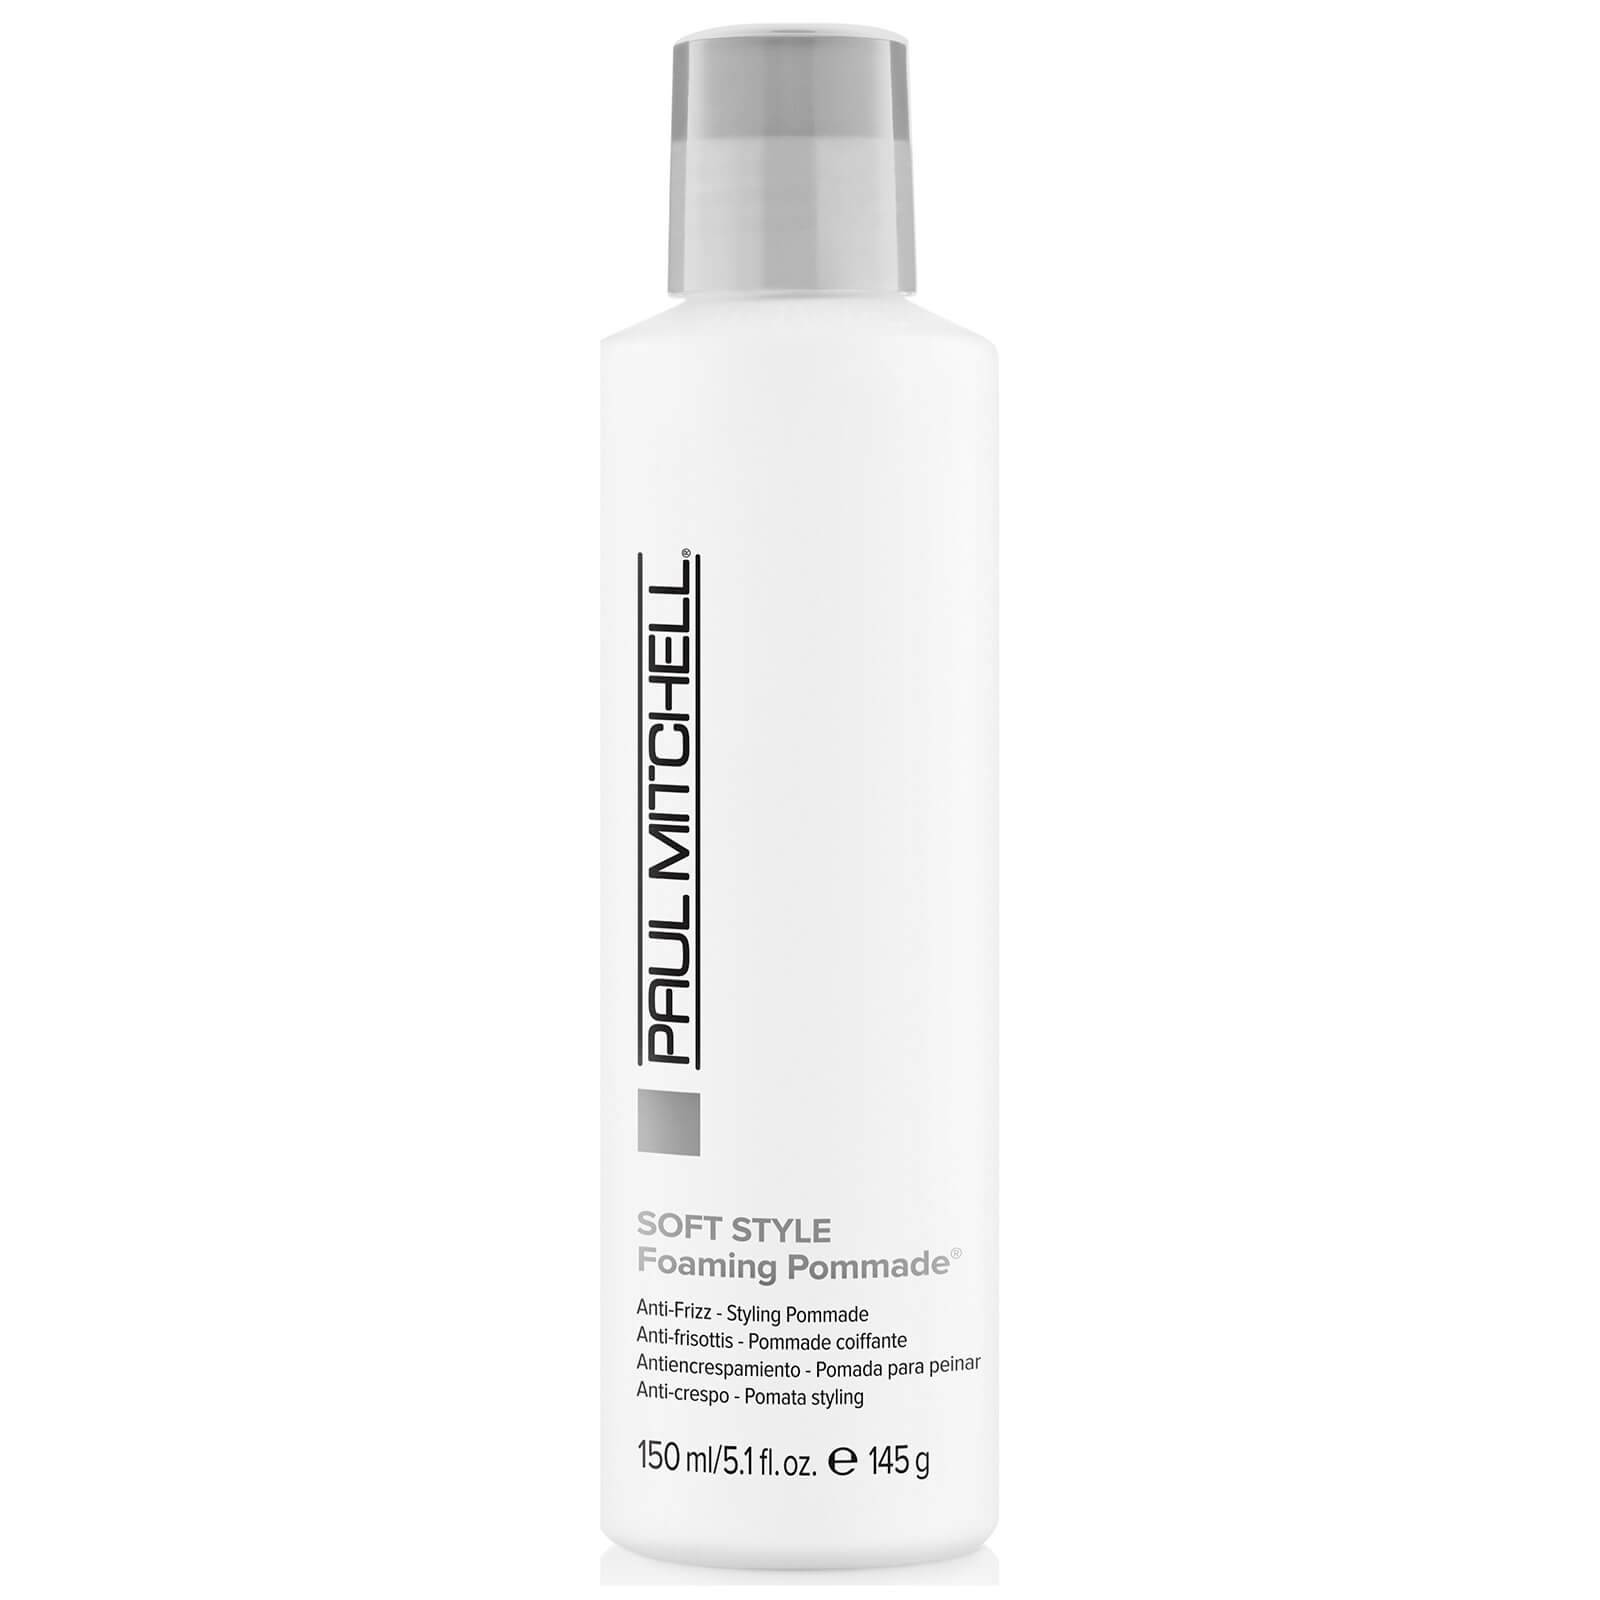 Paul Mitchell Cire texturisante Paul Mitchell Foaming Pomade 150ml